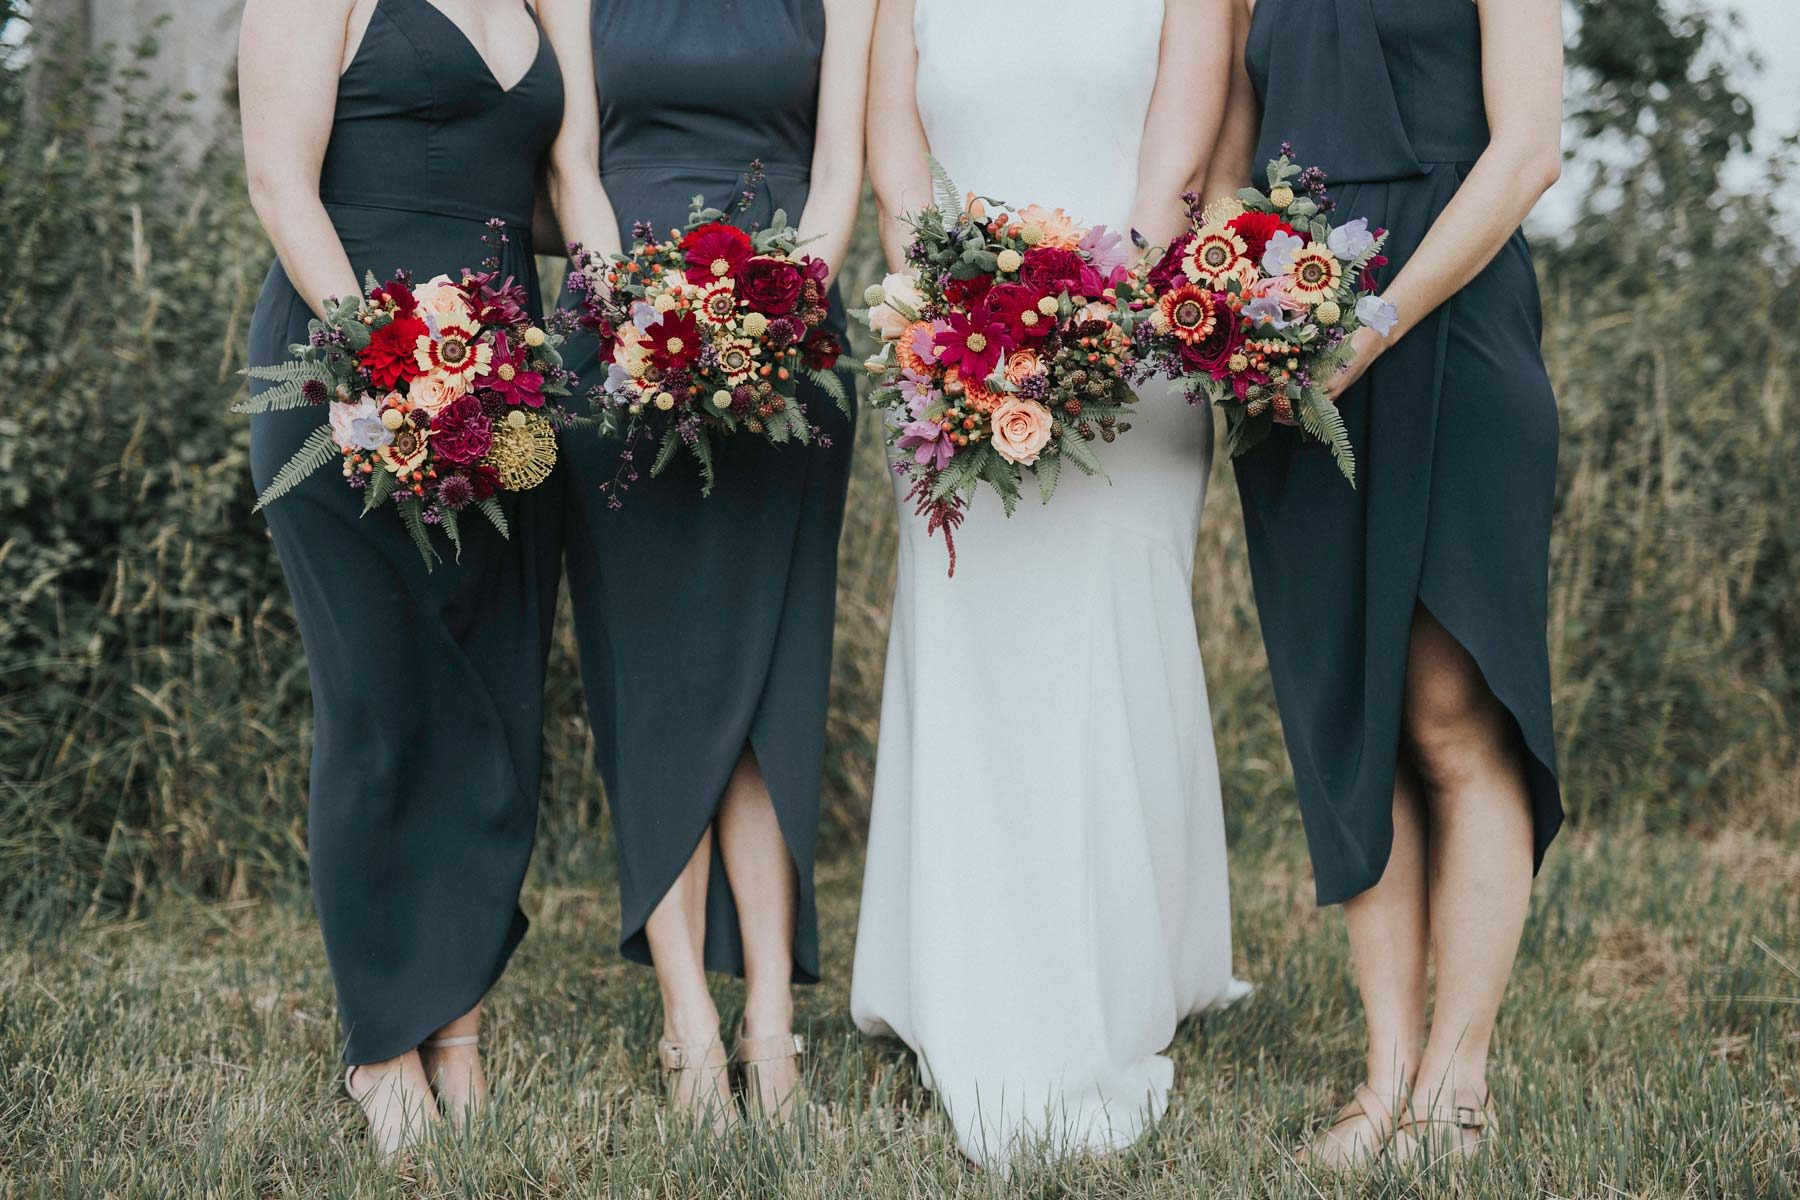 Hobart wedding florist Lisa Kingston